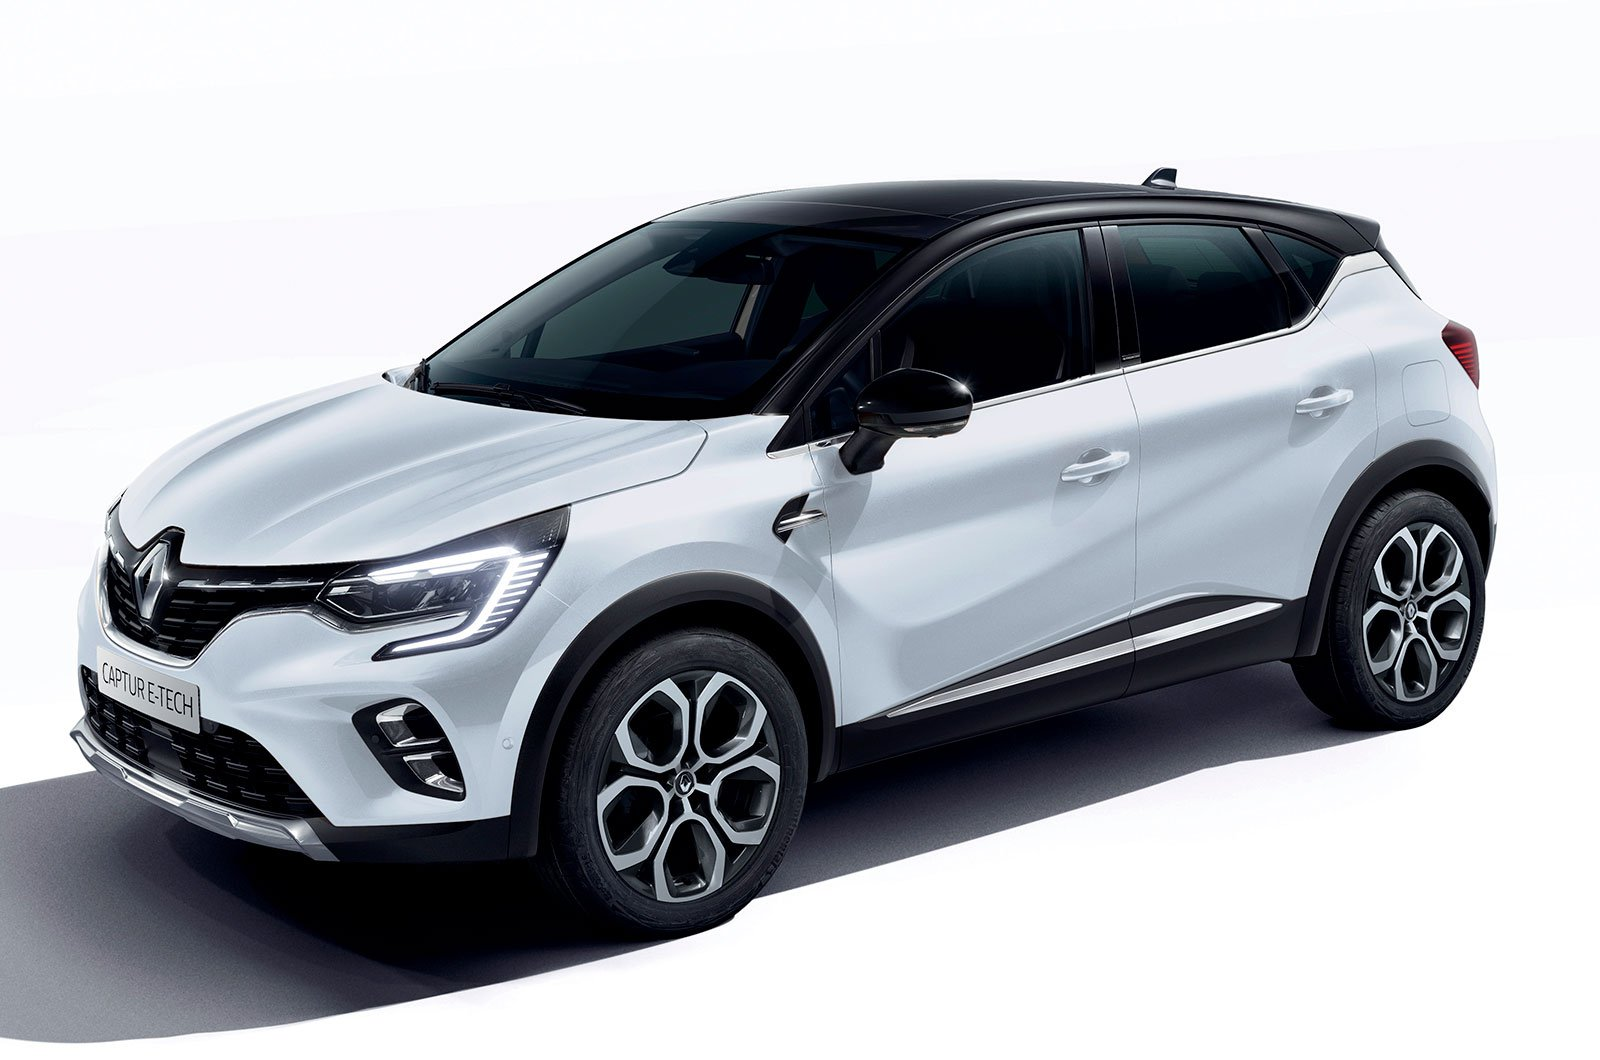 Renault Captur E-tech front